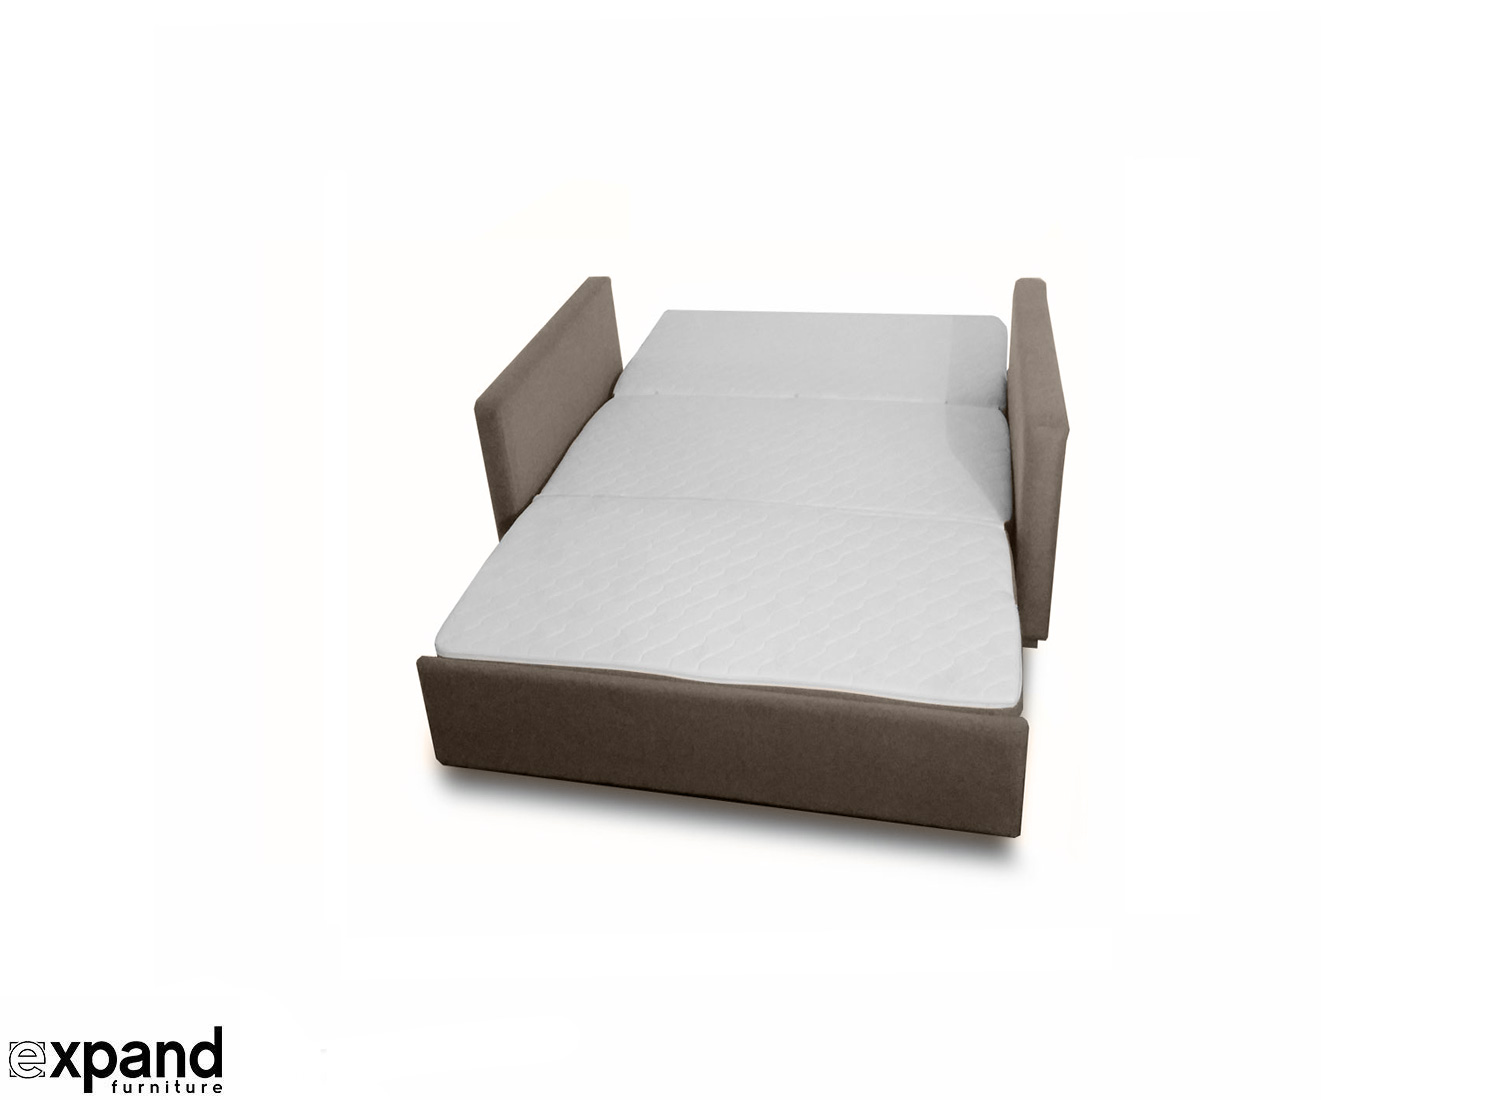 one person sofa bed 2 seater online bangalore harmony single with memory foam expand furniture prev